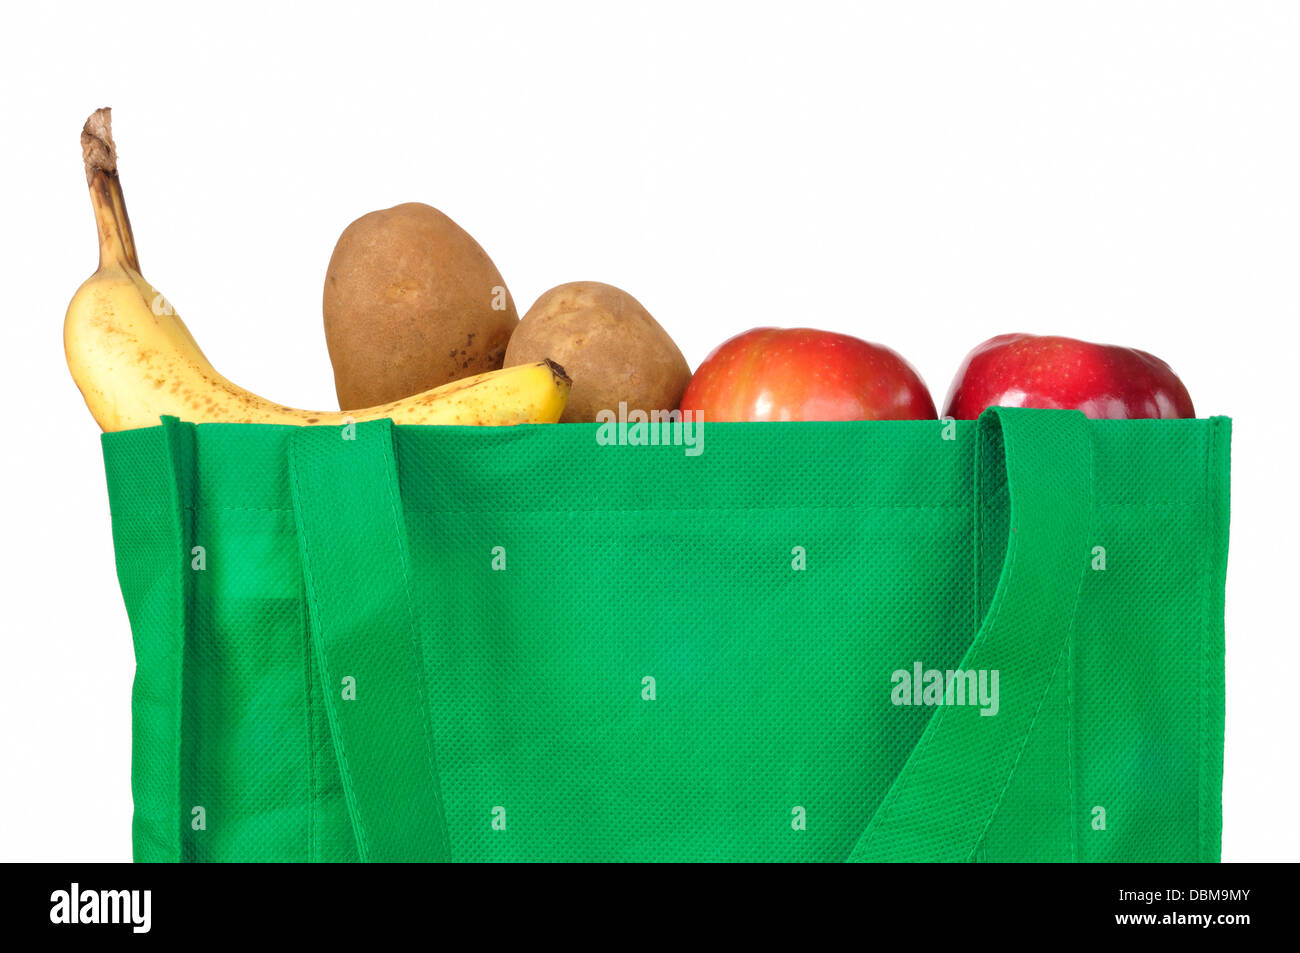 Shopping grocery bag with fruit and vegetables - Stock Image